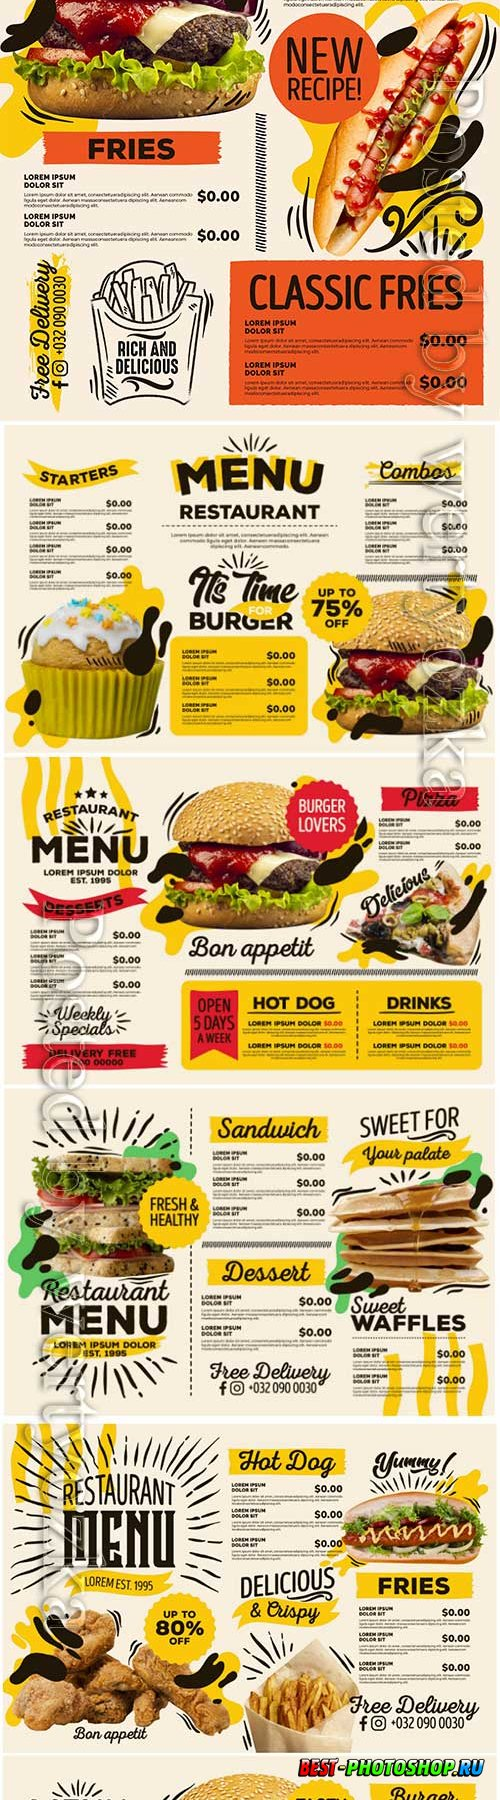 Digital restaurant menu fast food delivery